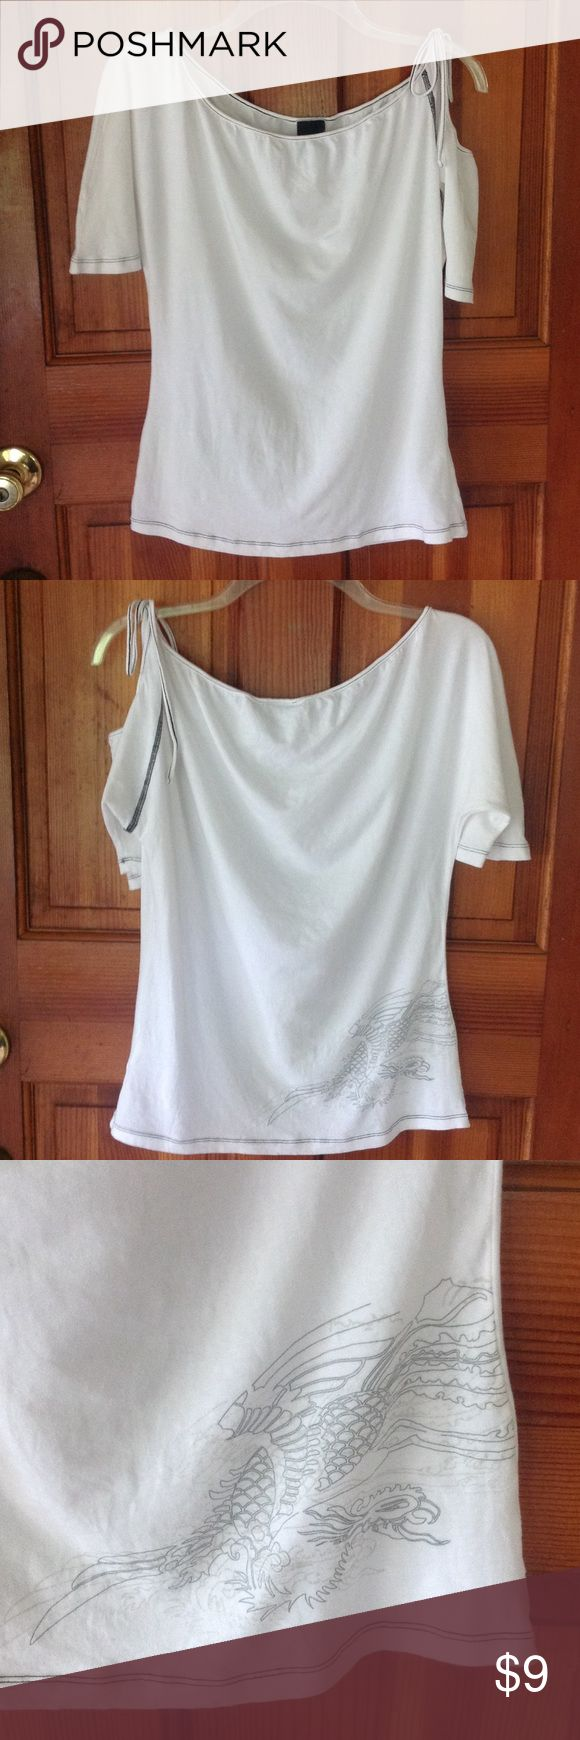 Nike tattoo design blouse. Nike tattoo design blouse,ties at shoulder with Nike logo. Measures 19 inches from armpit to armpit ,length is 23 inches from shoulder and is strechy. In good condition. Nike Tops